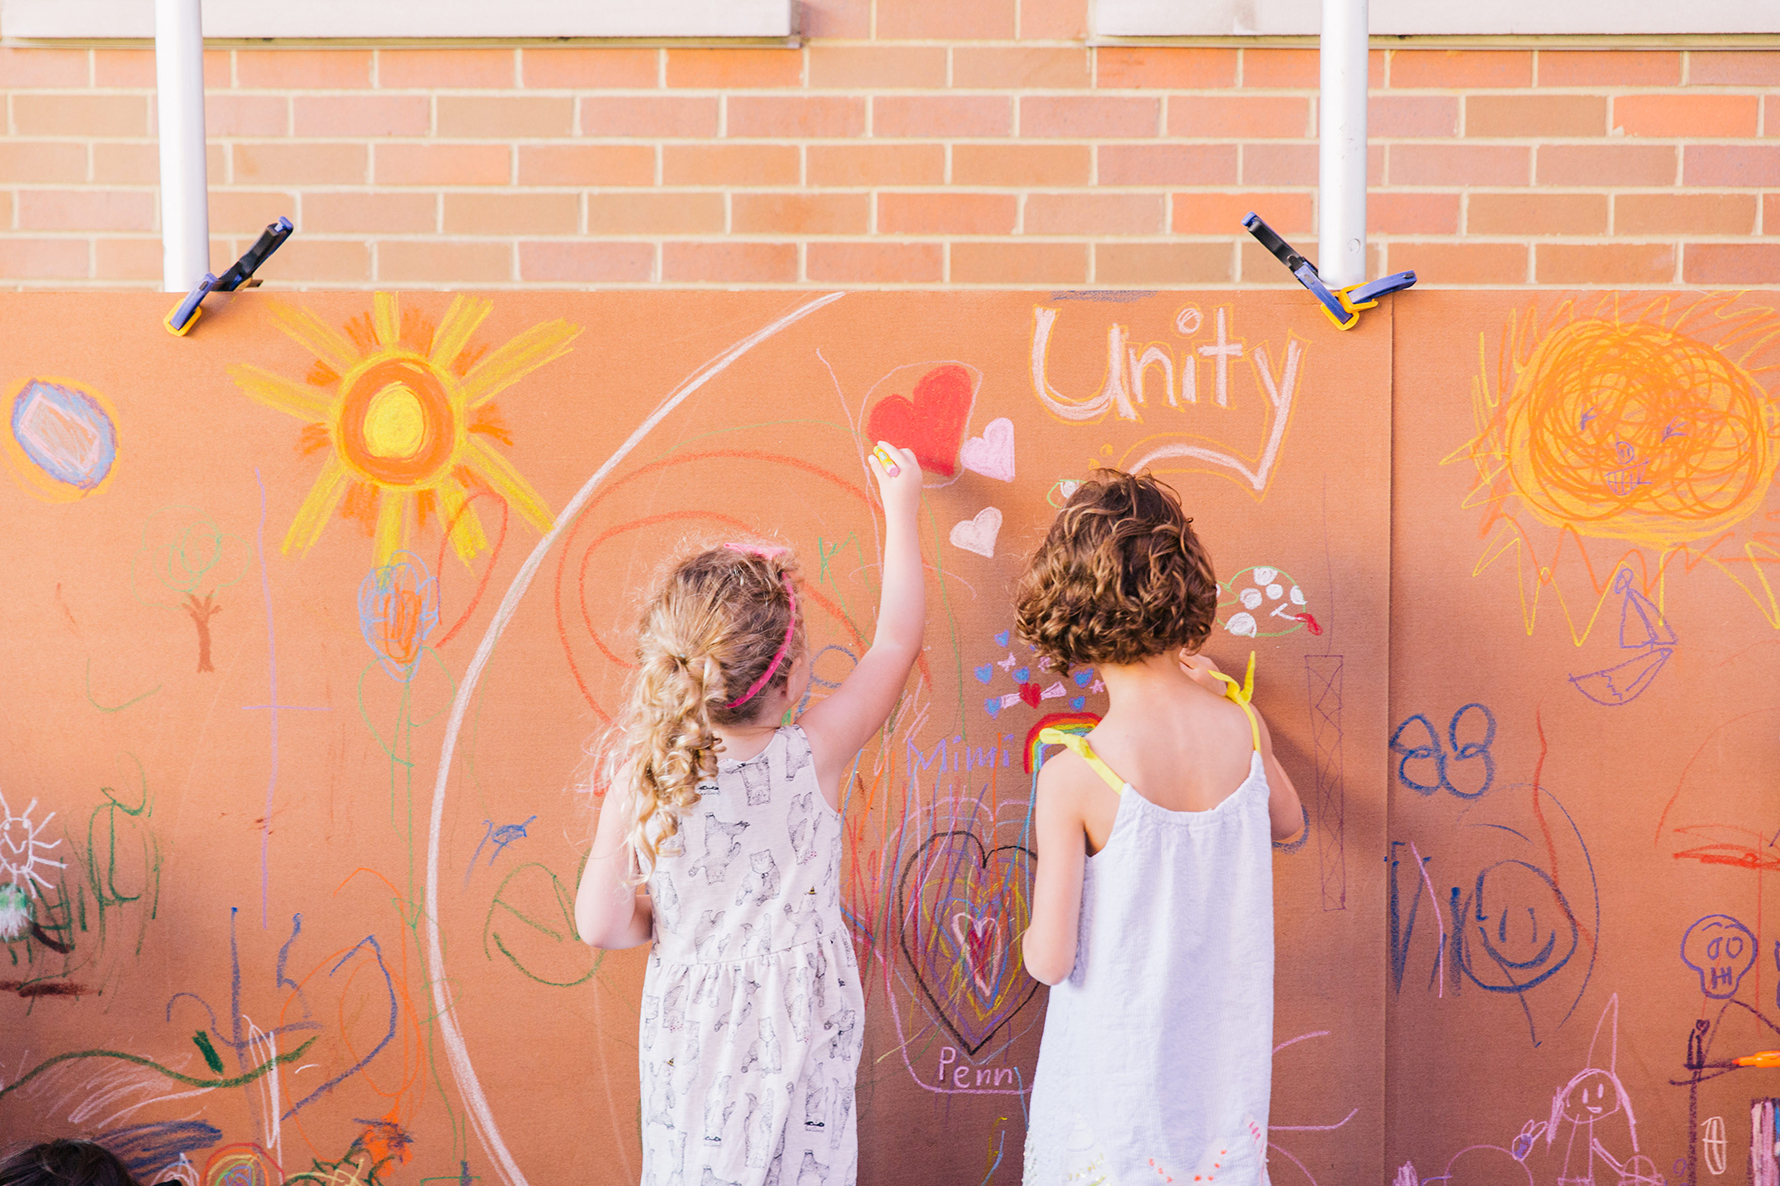 Two children in white summer dresses drawing with chalk on a brick wall